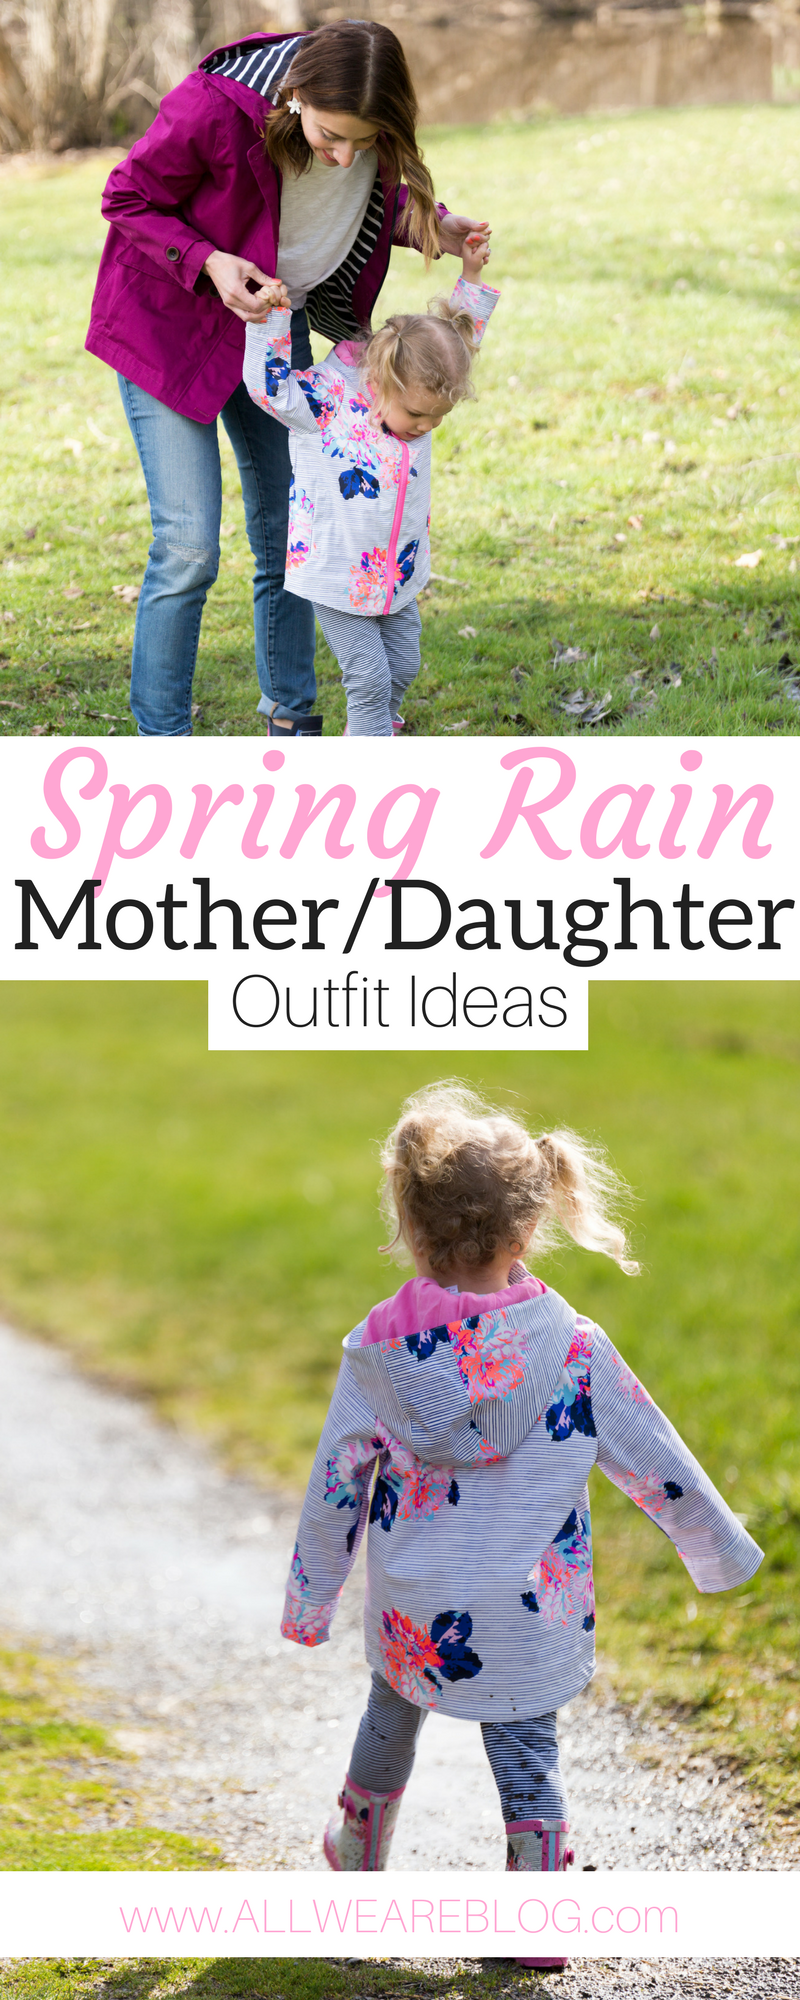 spring rain mother daughter outfit ideas